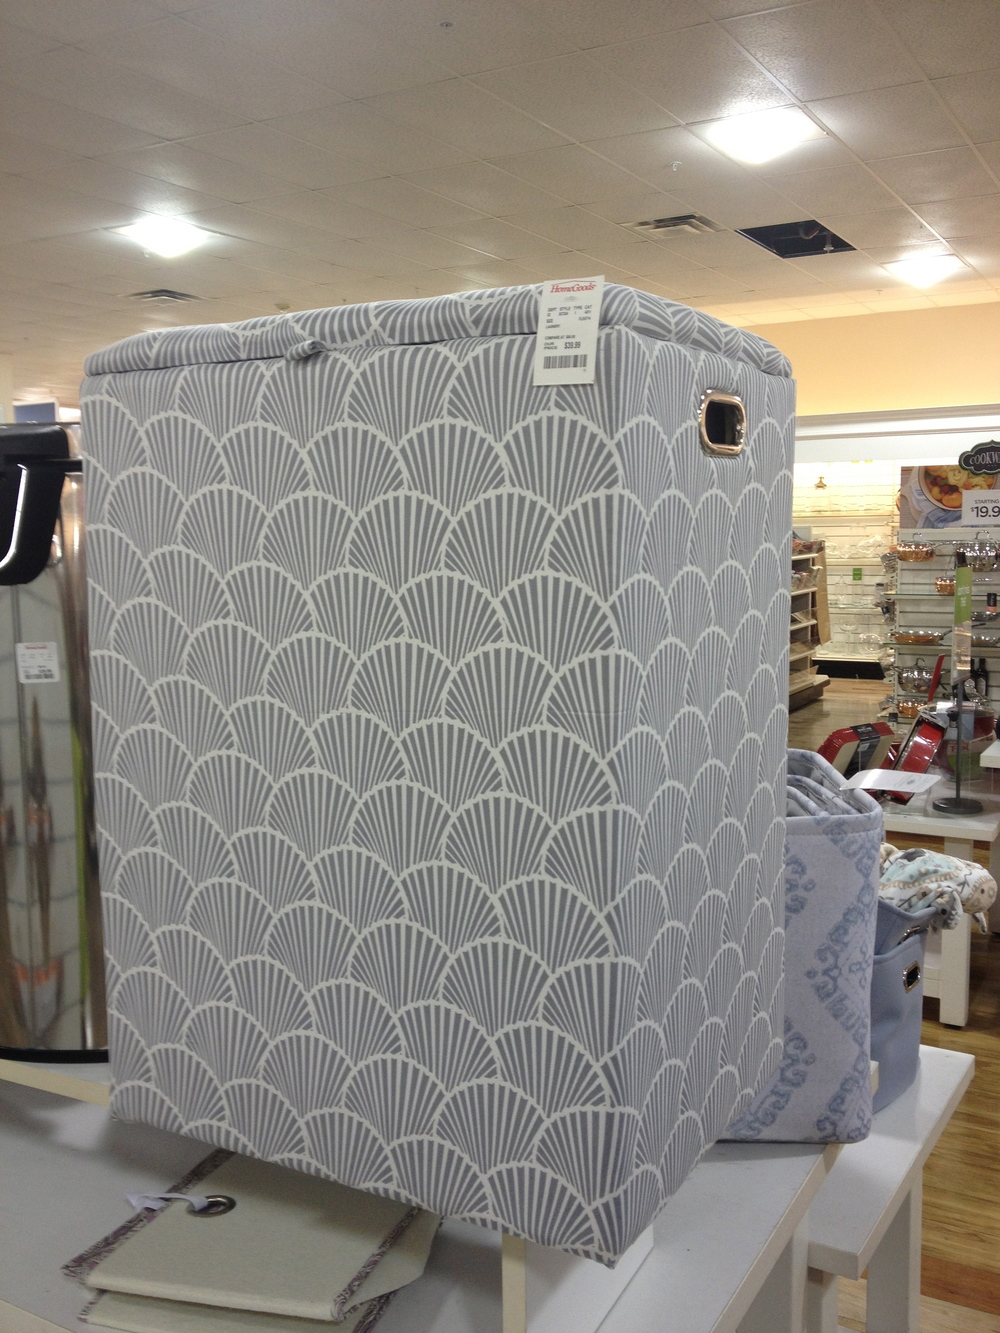 Not all finds were big pieces.  This laundry hamper had a great design and reminded of the higher end Serena and Lily product line.